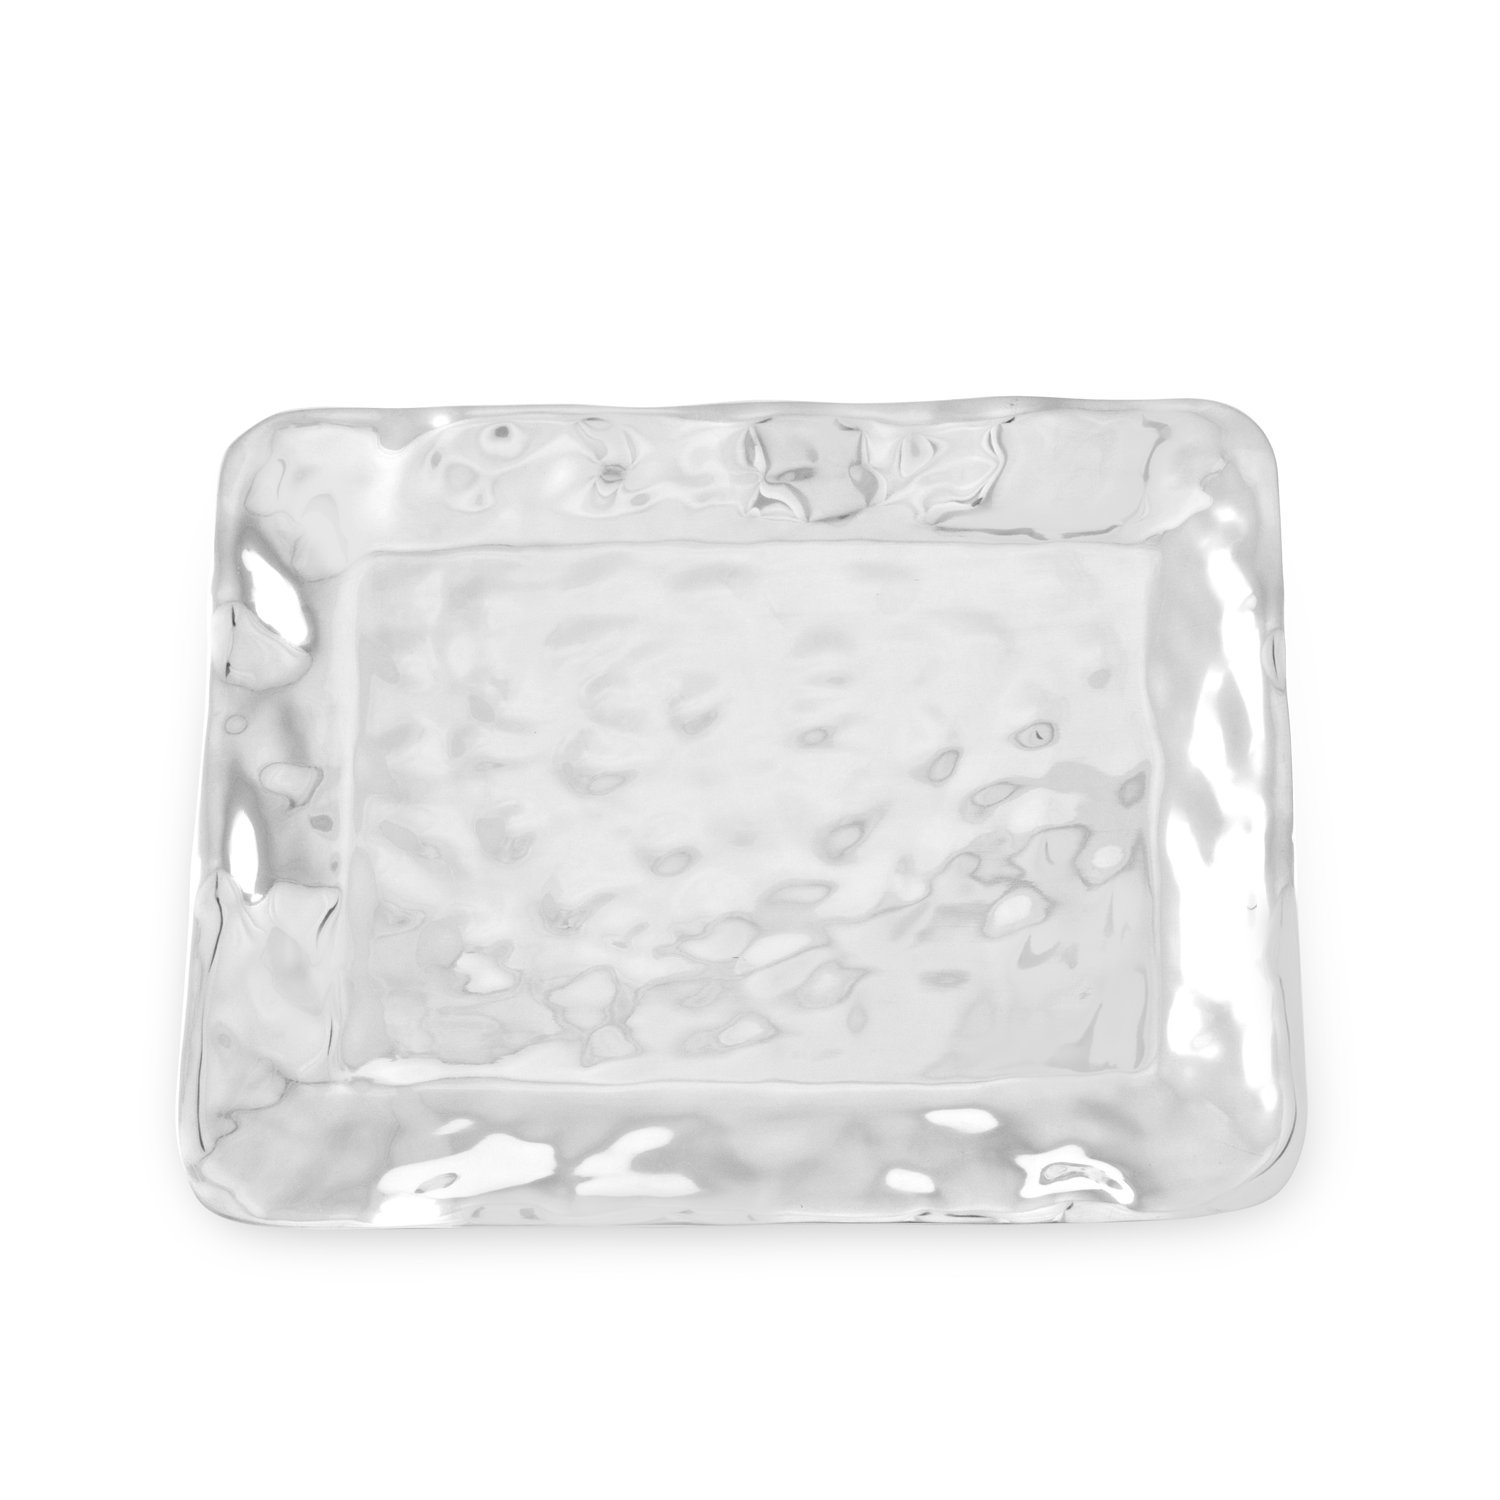 Beatriz Ball_7175 serving platters Metallic